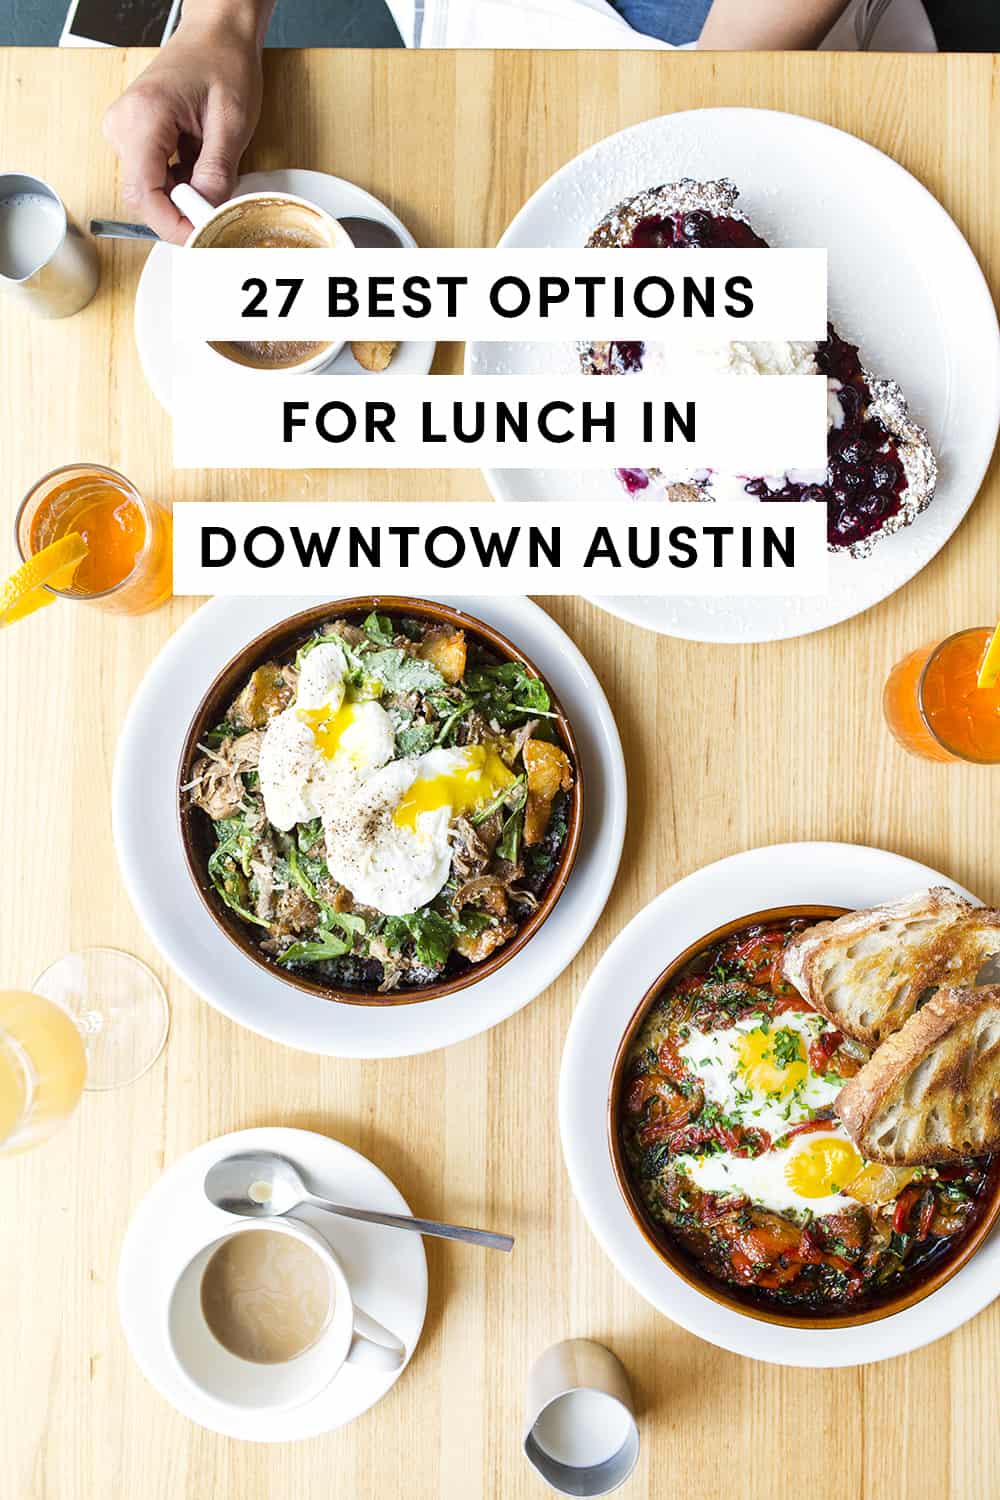 27 Best Options For Lunch Downtown Austin TX